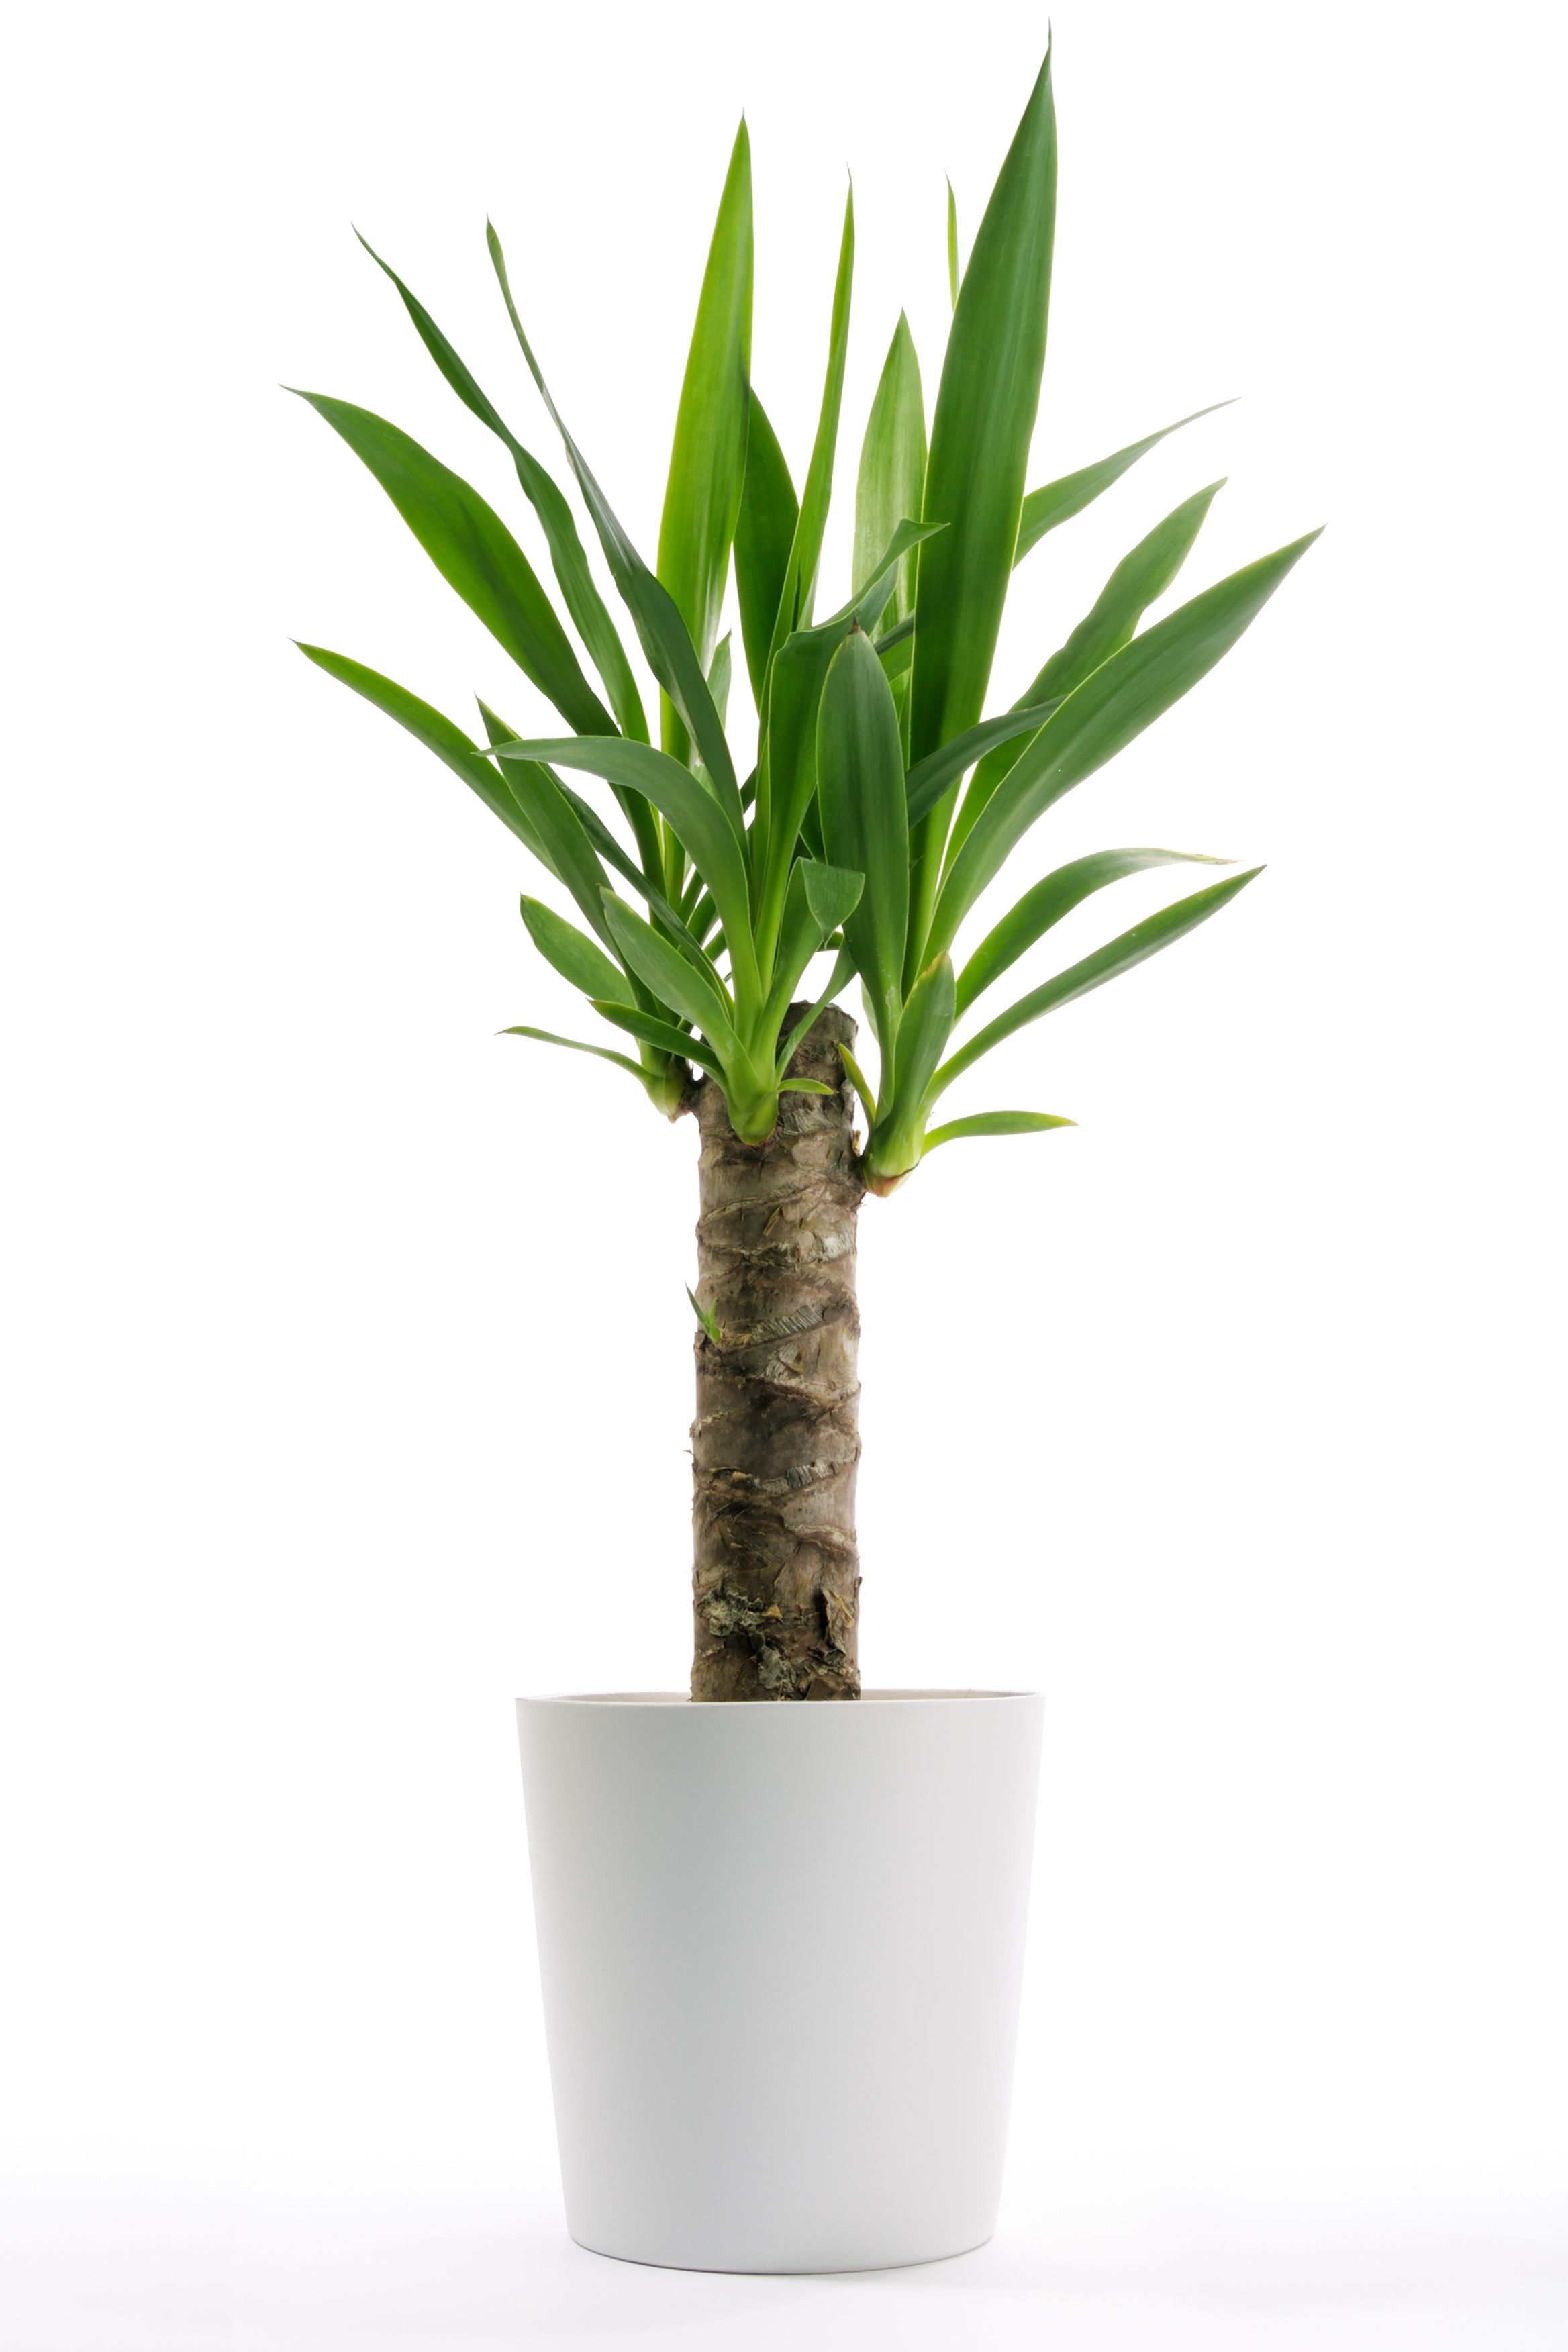 Yucca are easy to grow, requiring very little maintenance